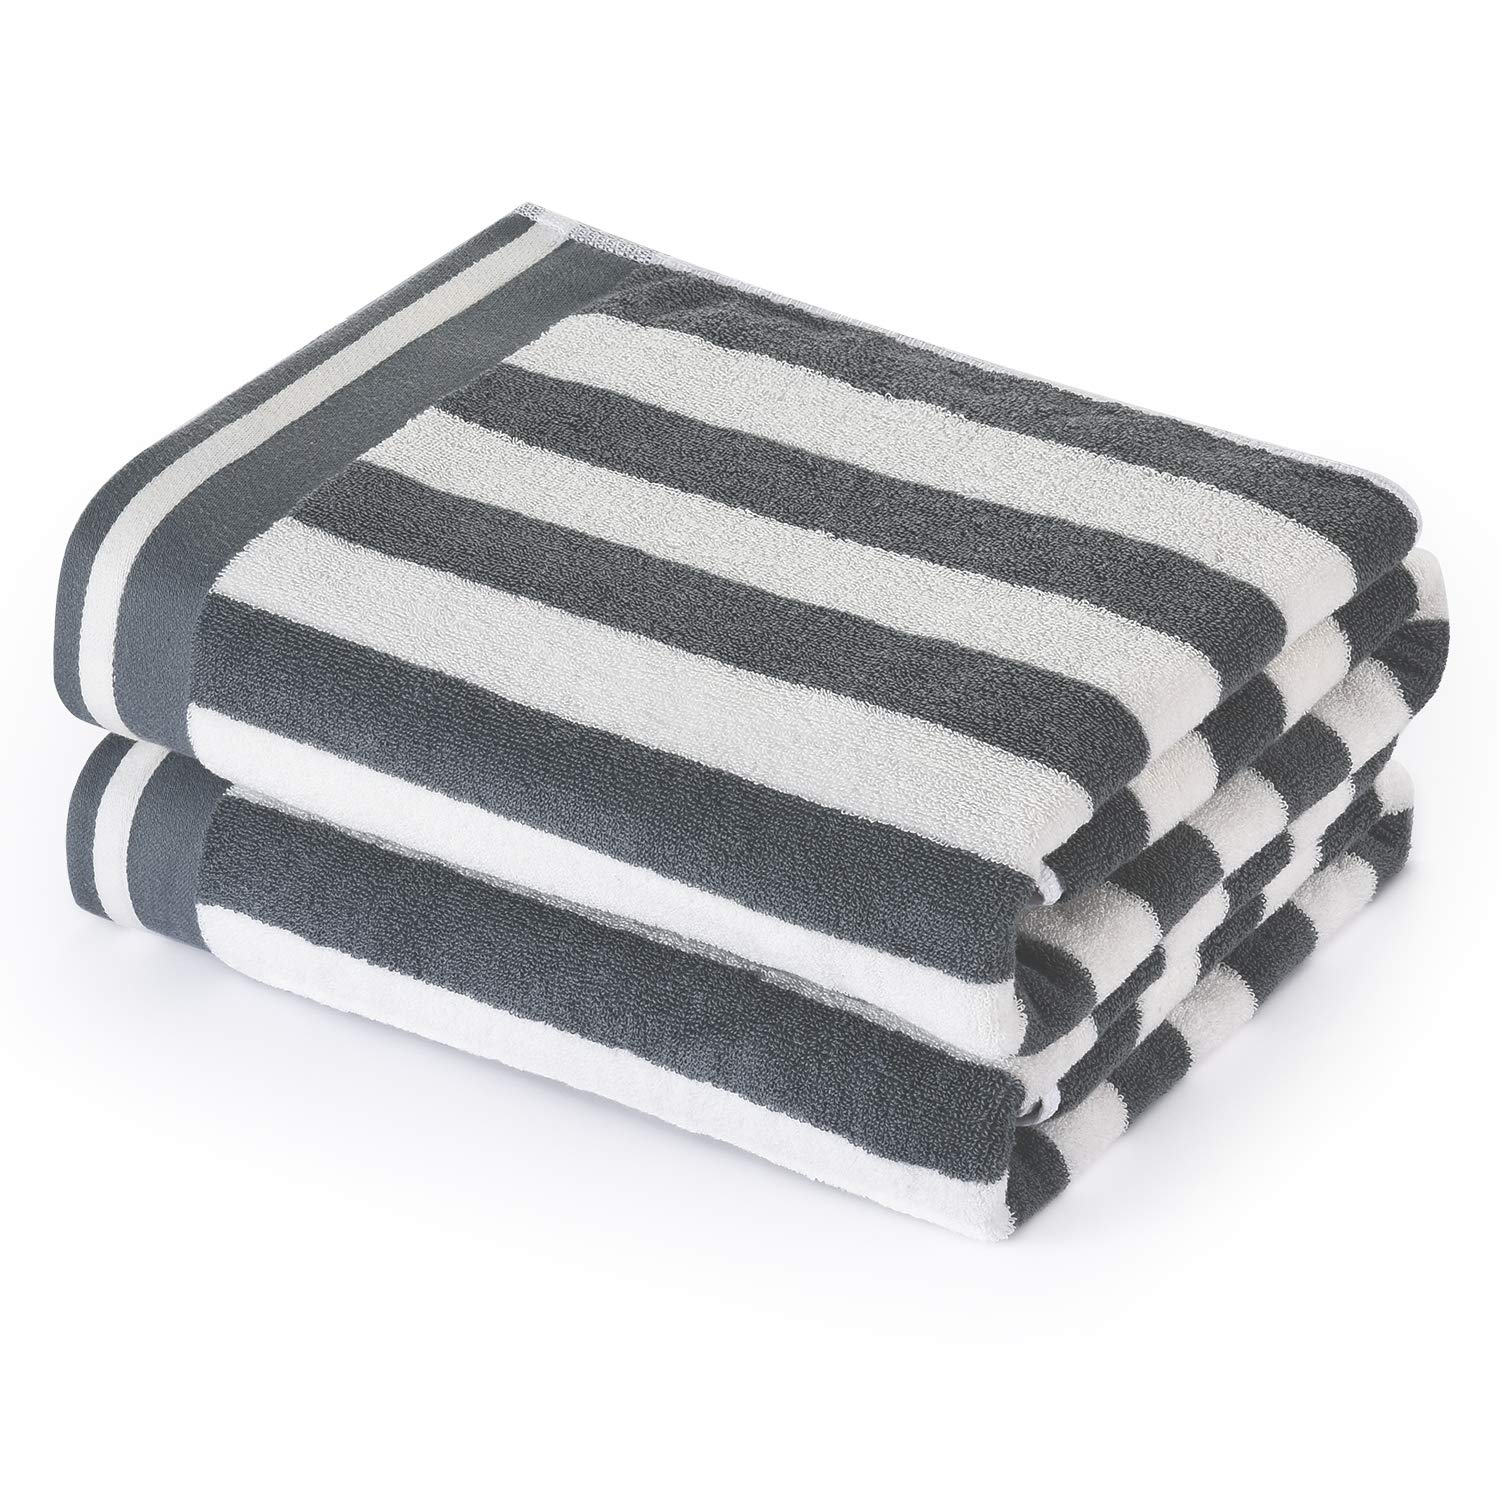 CASOFU Bath Towels, Cabana Stripe Beach Towels, Premium Cotton Bath Towels with Light Stripe - 100% Ring Spun Cotton Large Beach and Pool Towels - 2 Piece (Grey, 27x 54 inches)